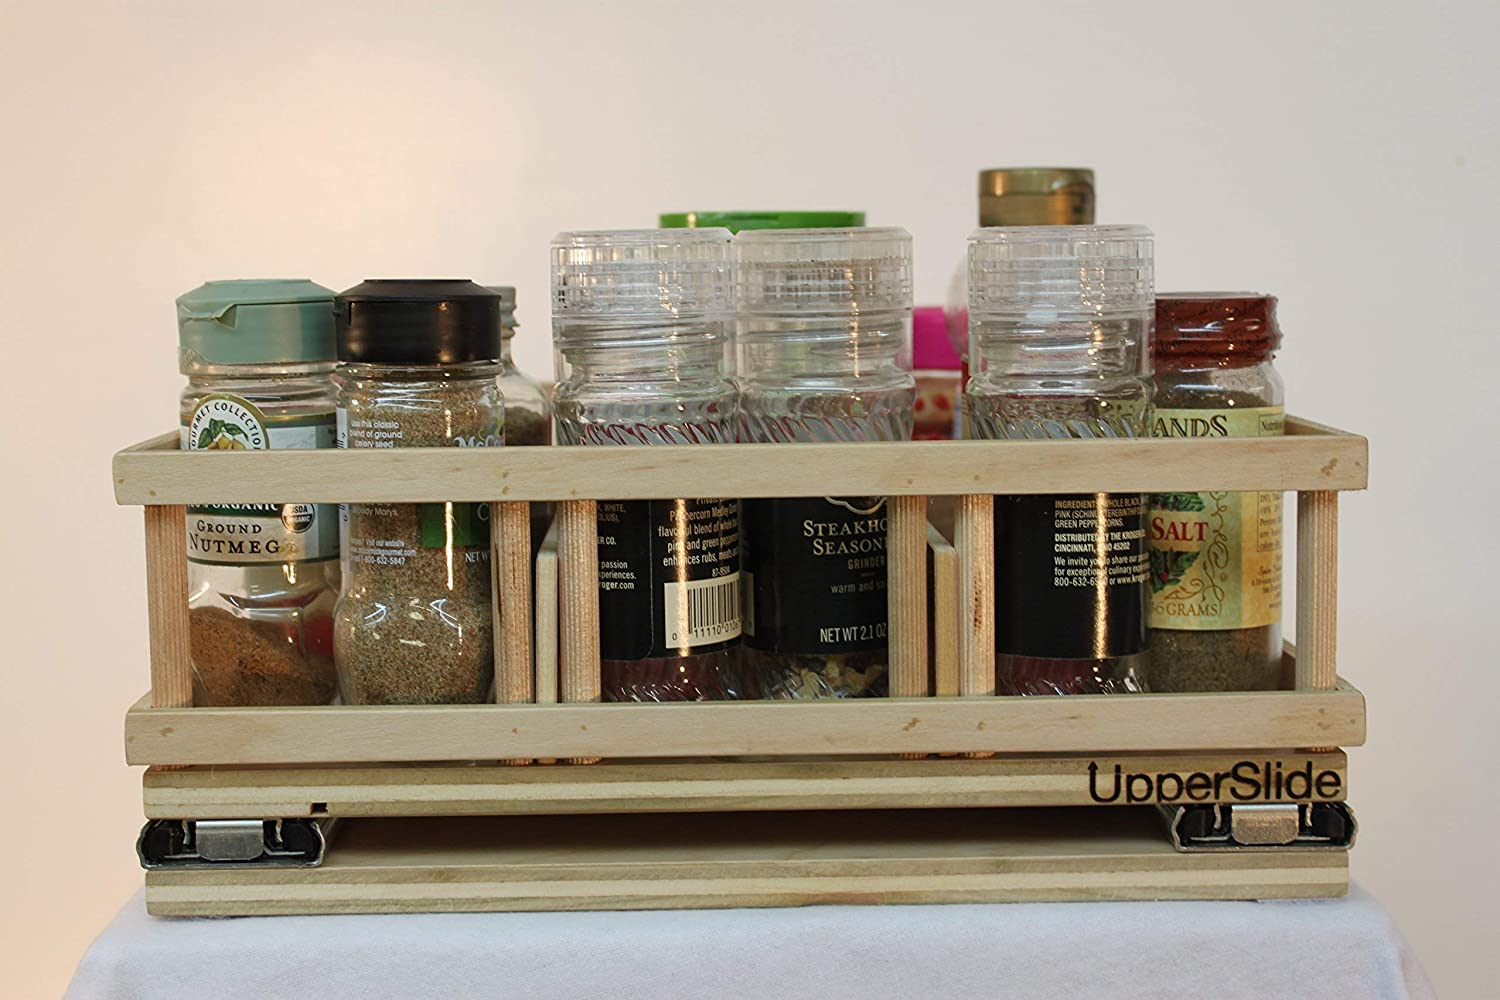 UpperSlide Cabinet Caddies Medium Spice Rack Pull Out Caddy Upper Cabinet Storage fitting most 15 inch cabinets (US 303M) FREE SHIPPING